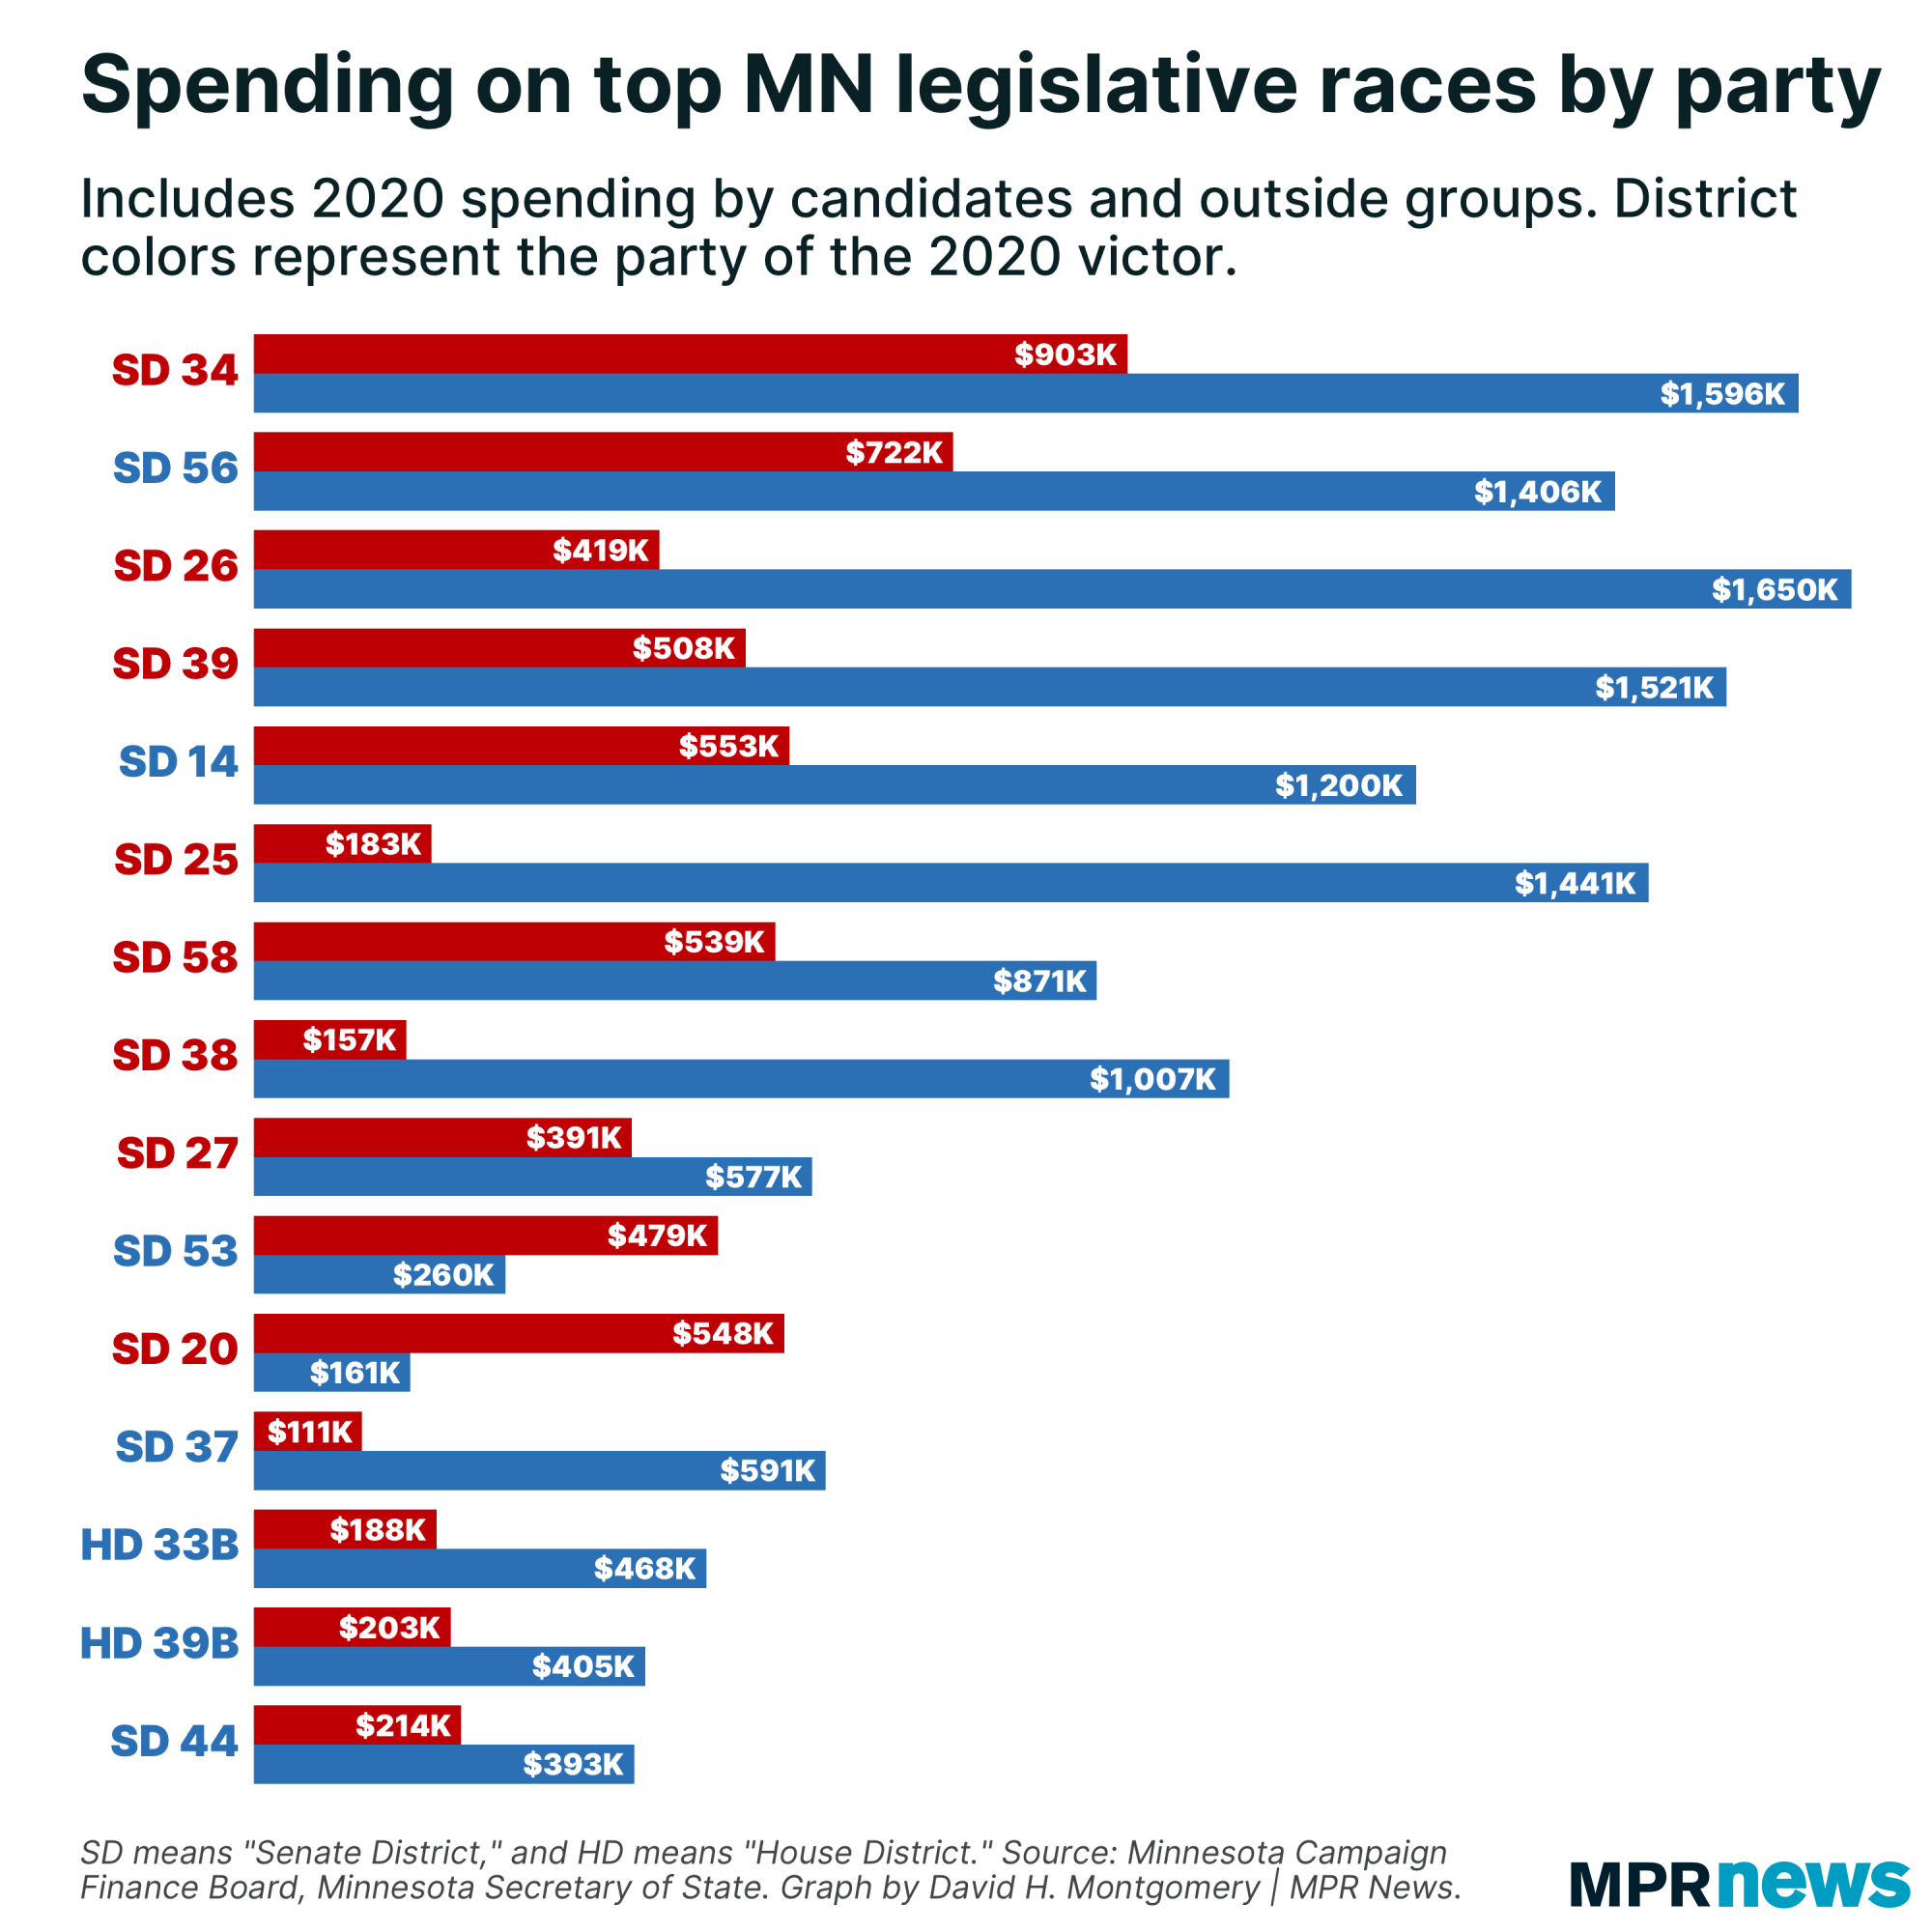 Graph of spending on top Minnesota legislative races by party